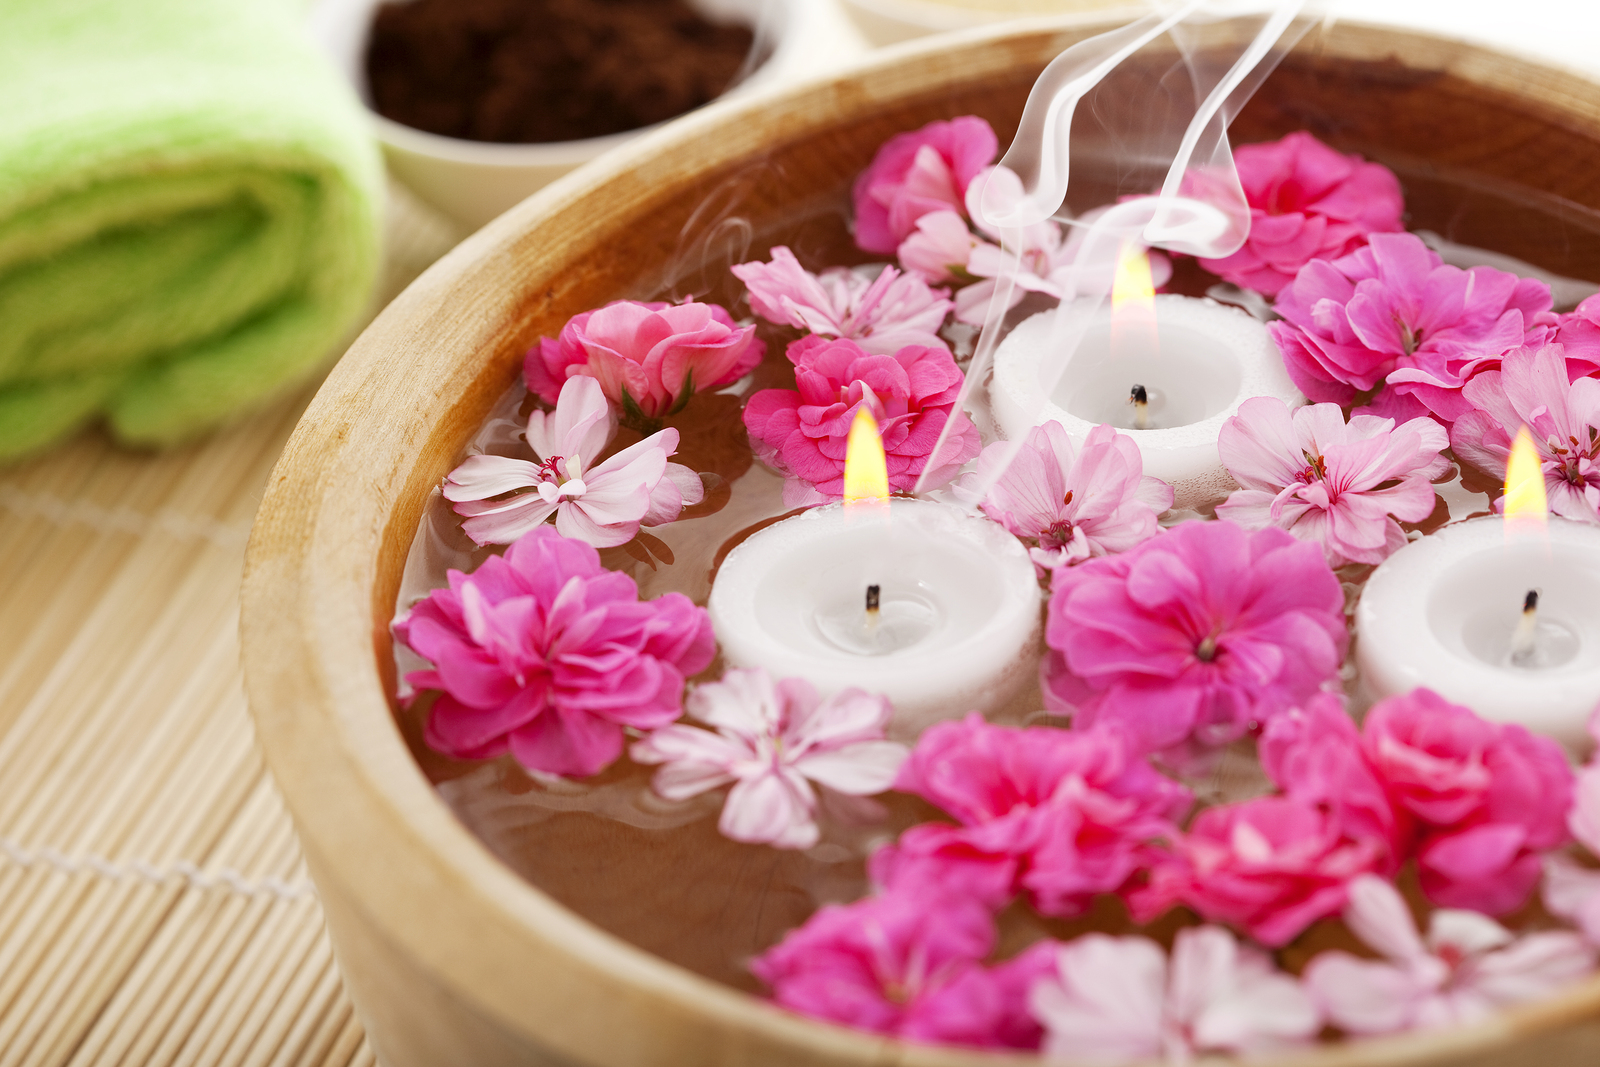 bigstock Image of spa therapy flowers 26991908 - Gift Vouchers